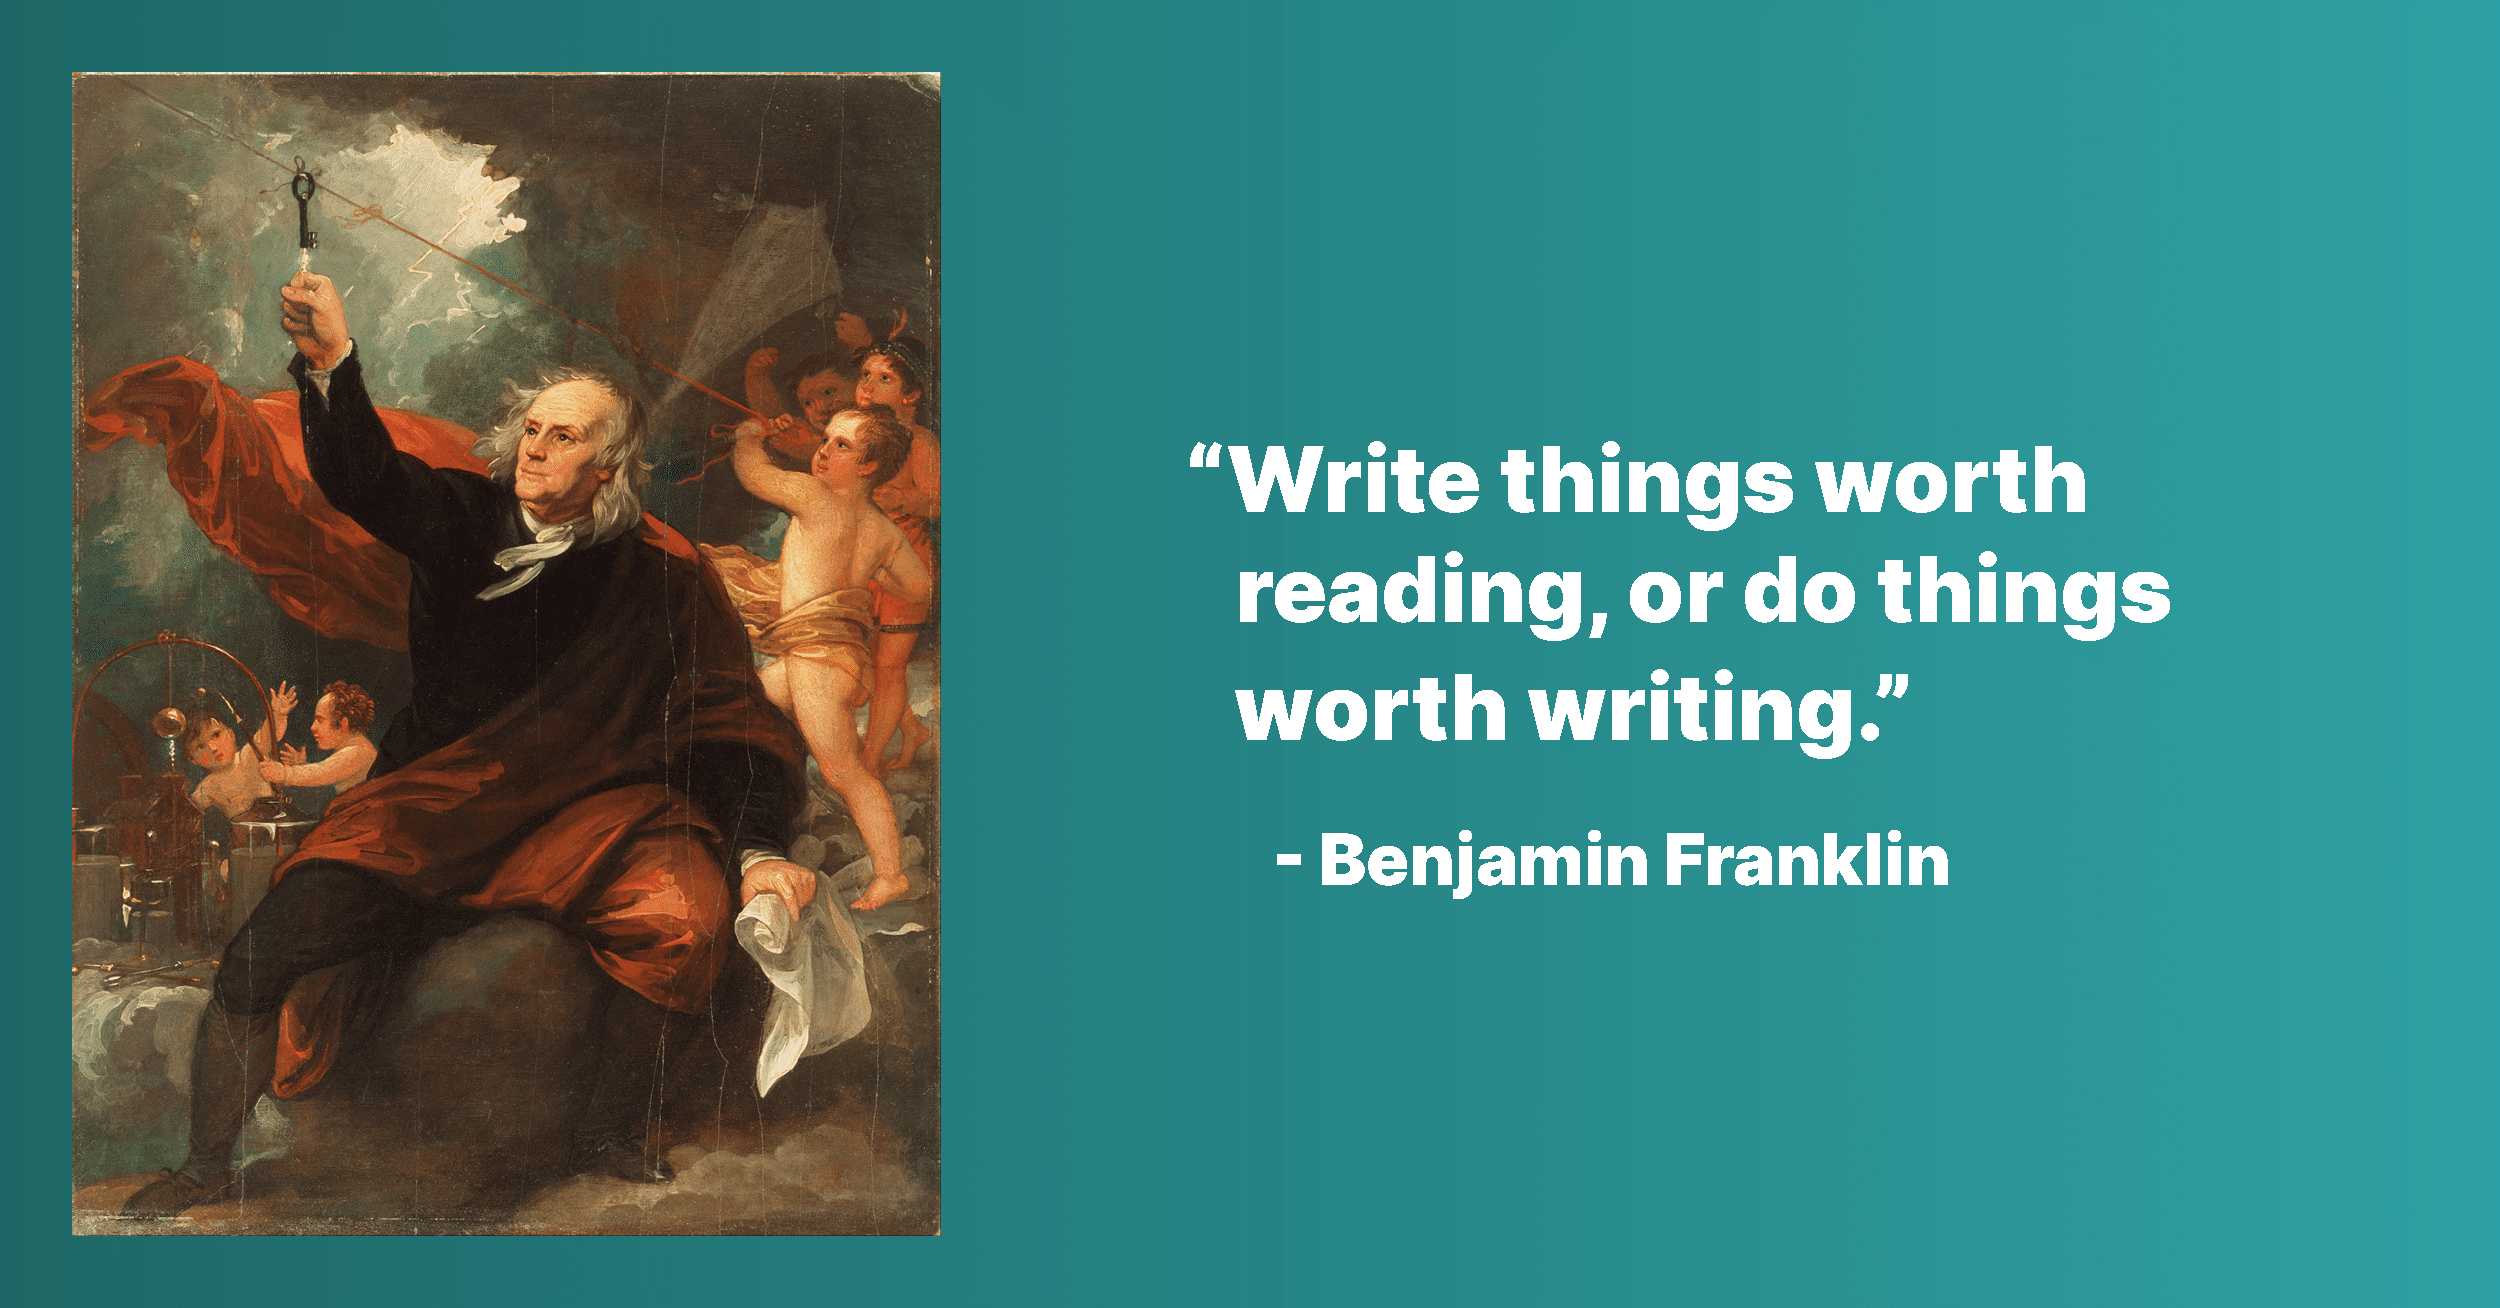 """Ben Franklin with a lighting rod. """"Do something worth writing or write something worth doing"""""""